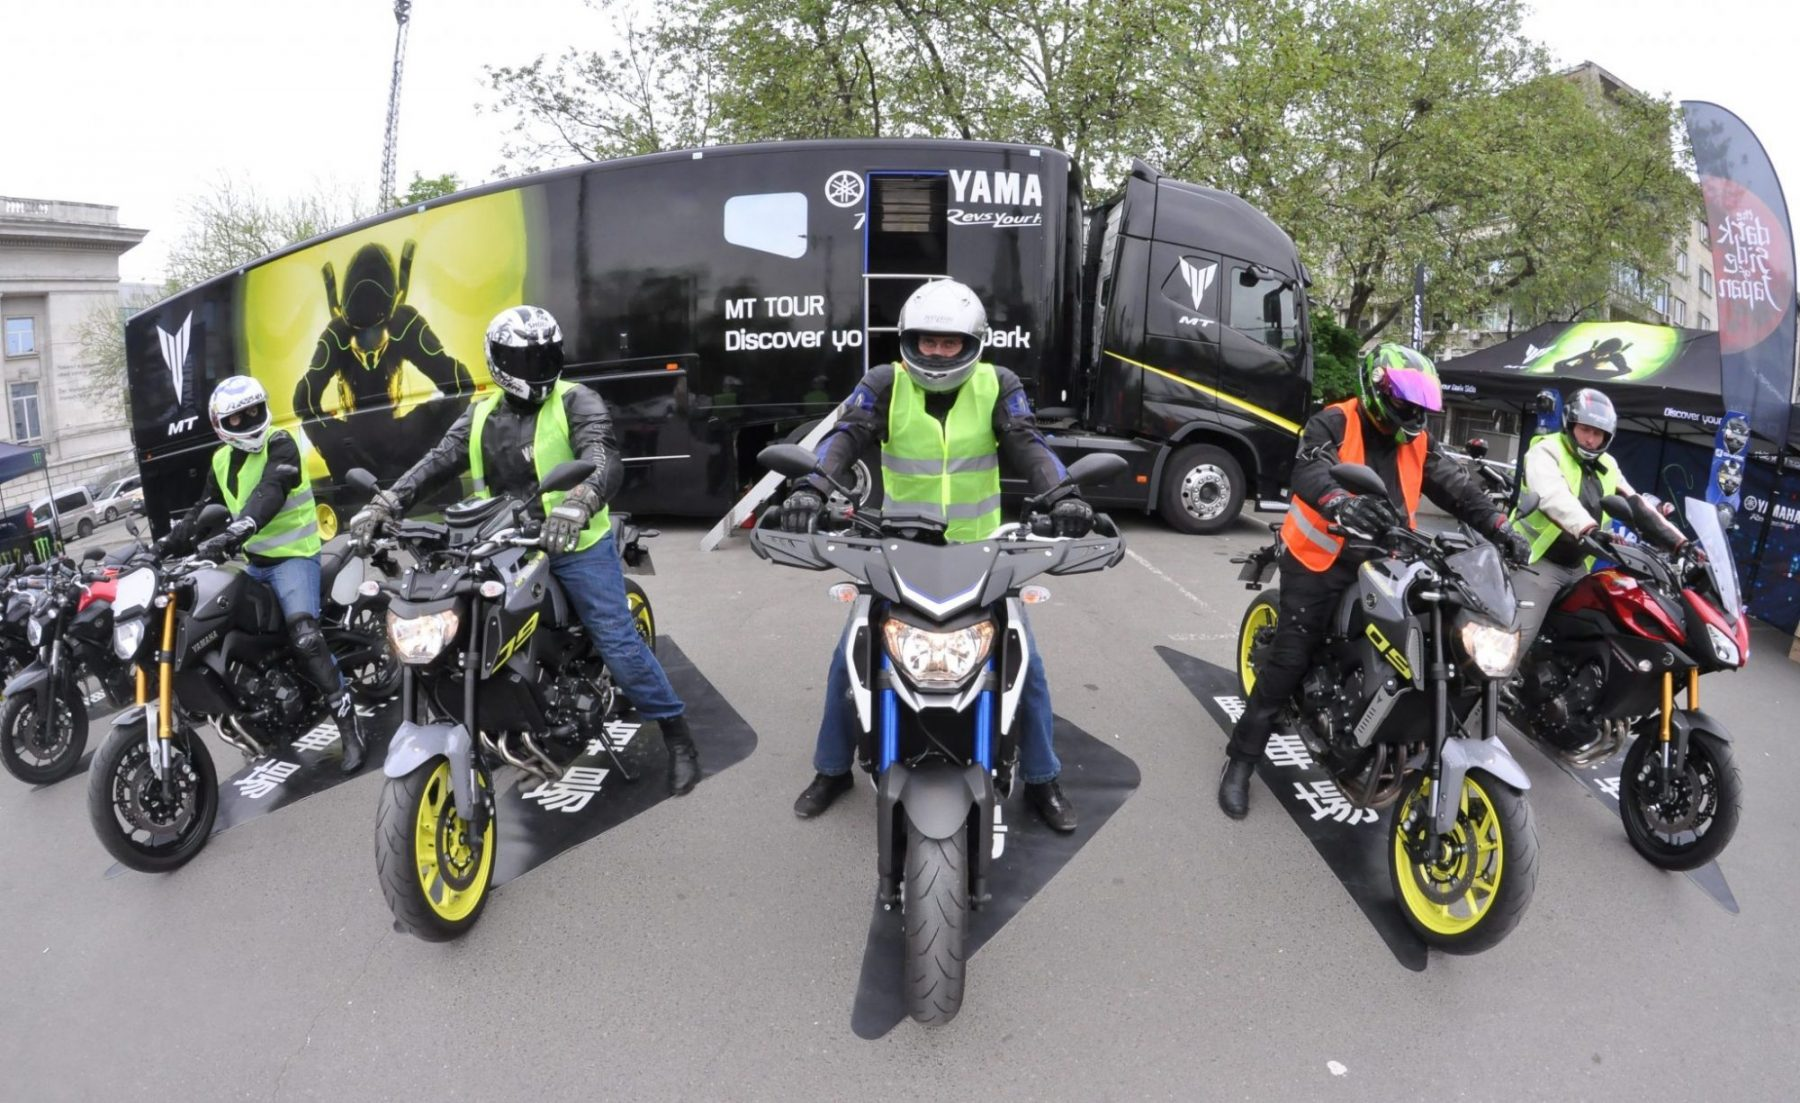 Yamaha MT TOUR се завръща в София – запишете се за тест райд